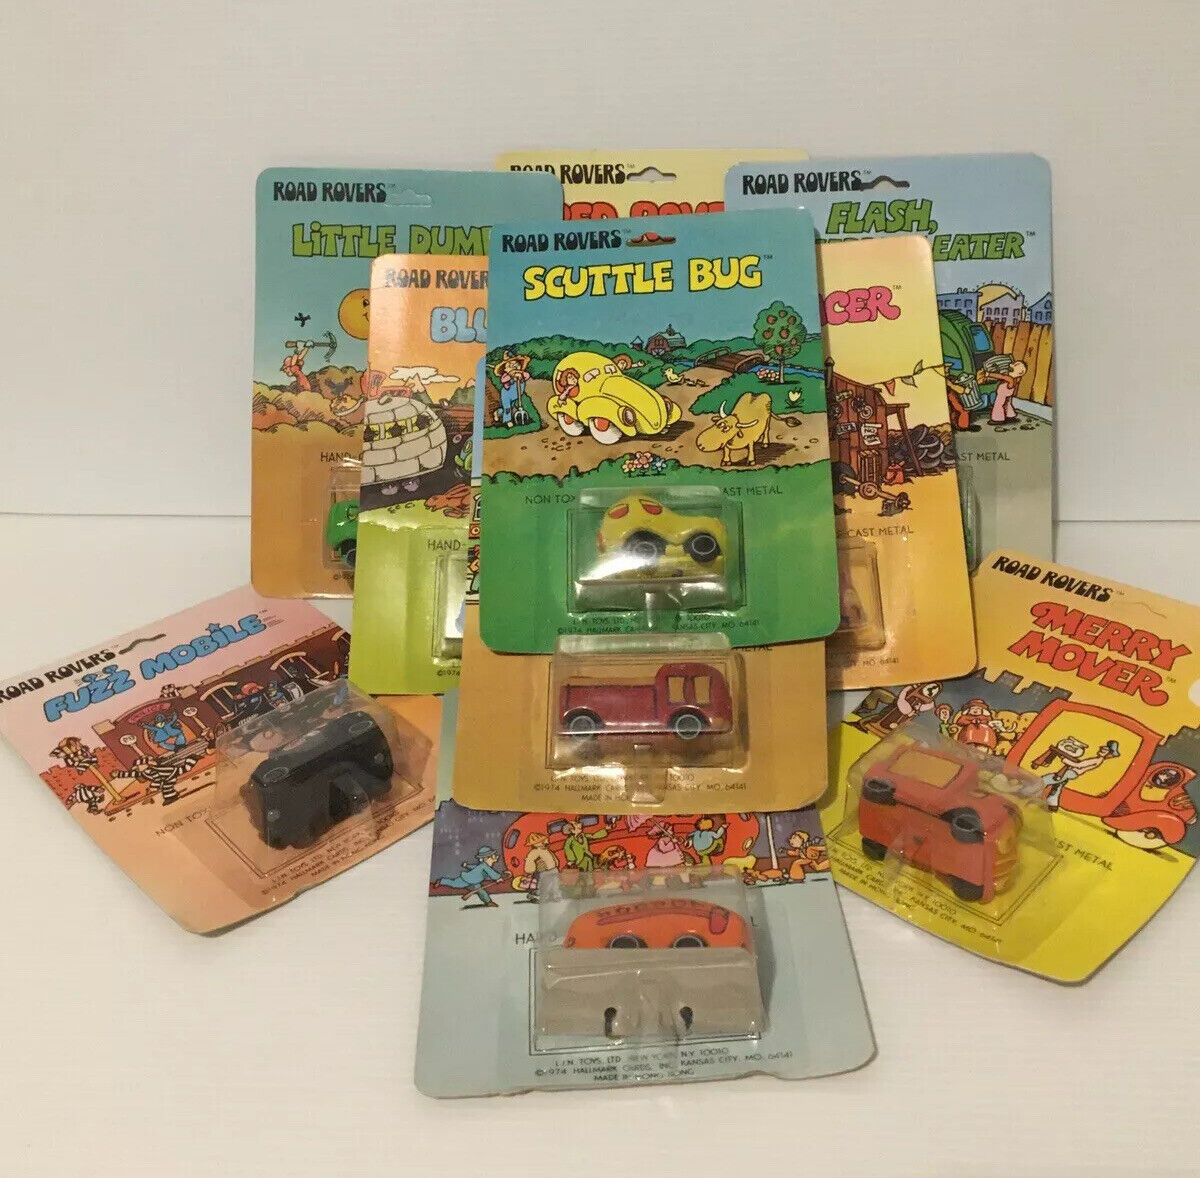 ROAD ROVERS FULL SET OF 10 FROM 1974 MADE IN HONG KONG